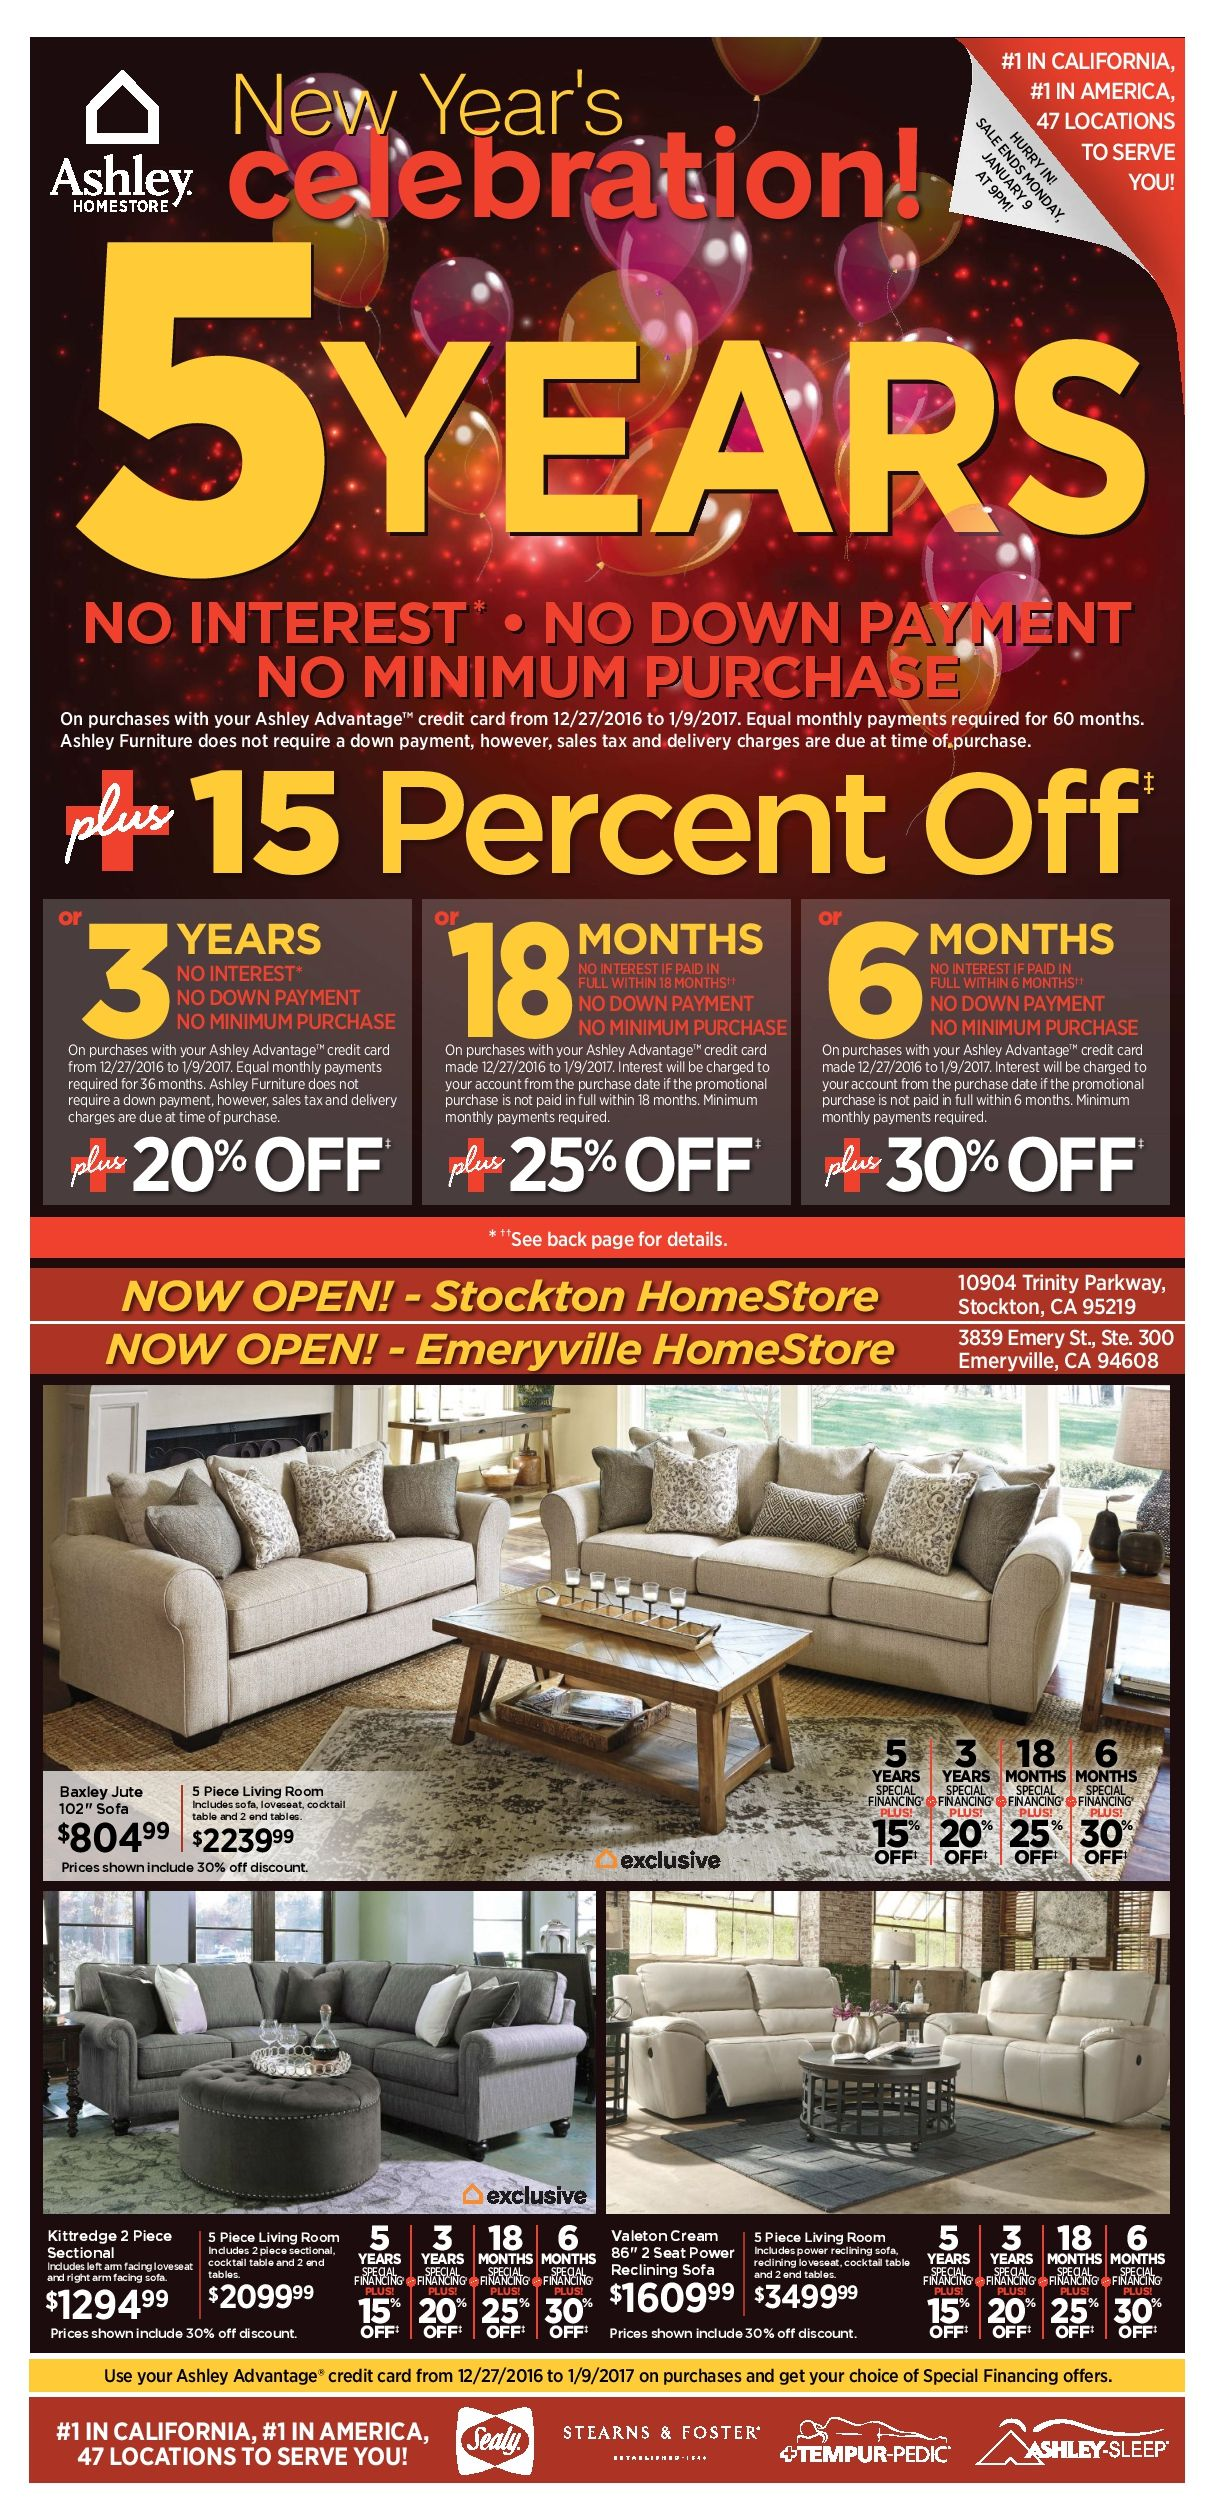 store ads fabulous of about sam ashley the ad collection furniture february current advertisement warehouse j weekly images remodel levitz